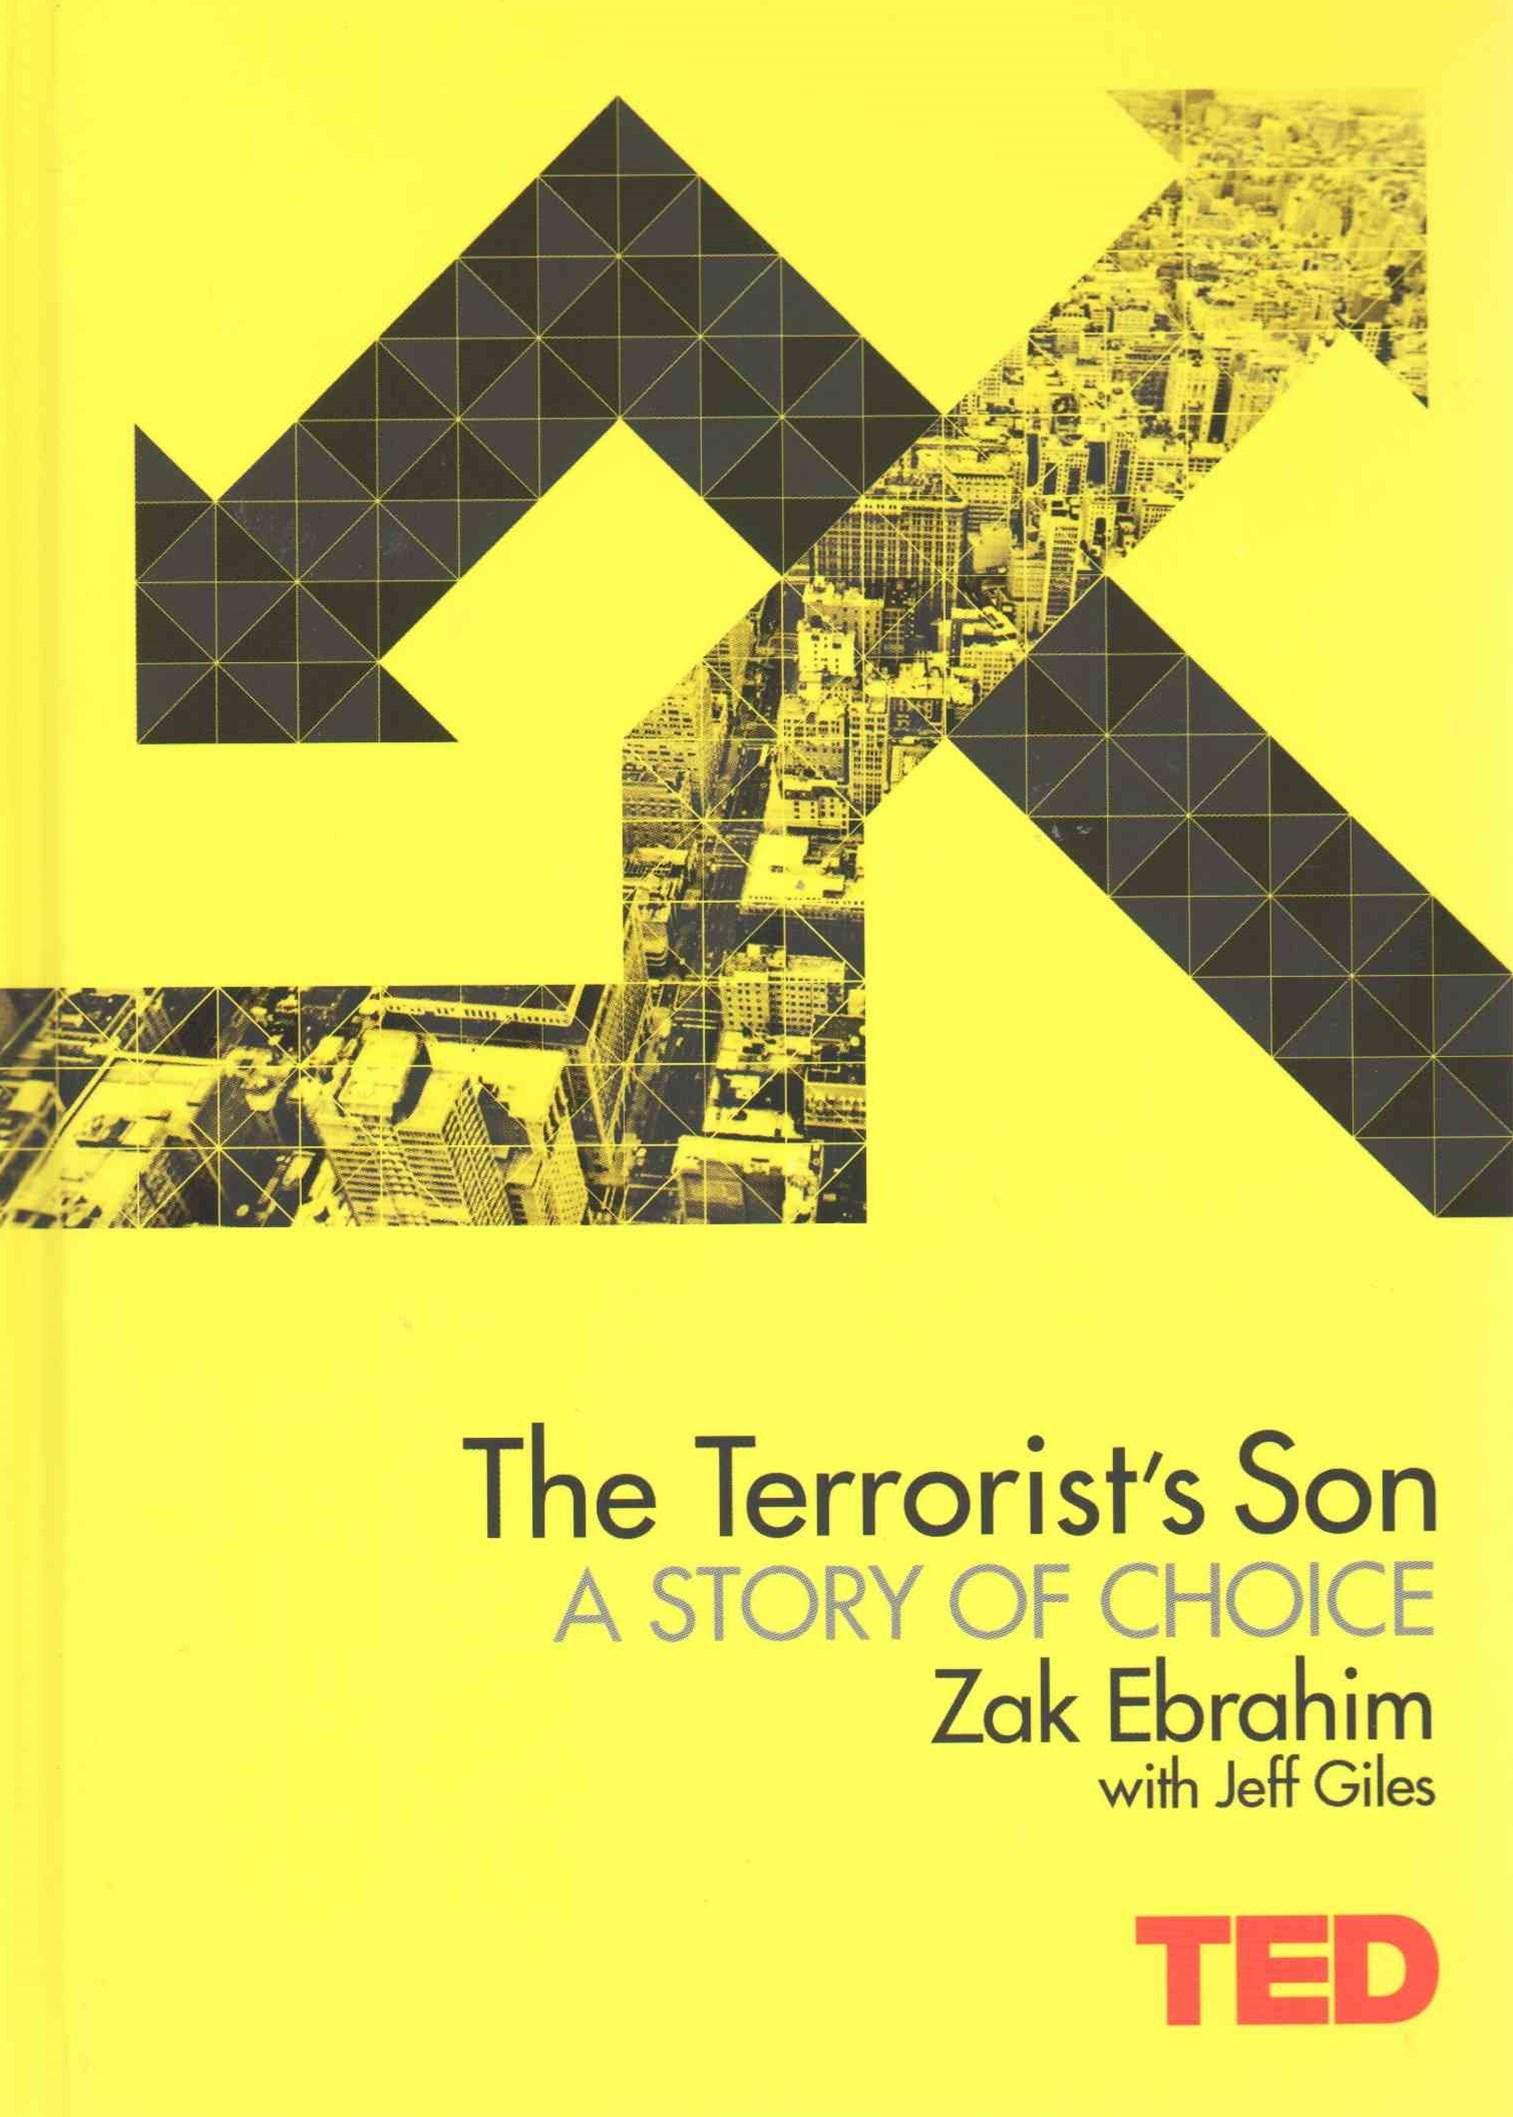 TED: The Terrorist's Son: Ending a Legacy of Hate